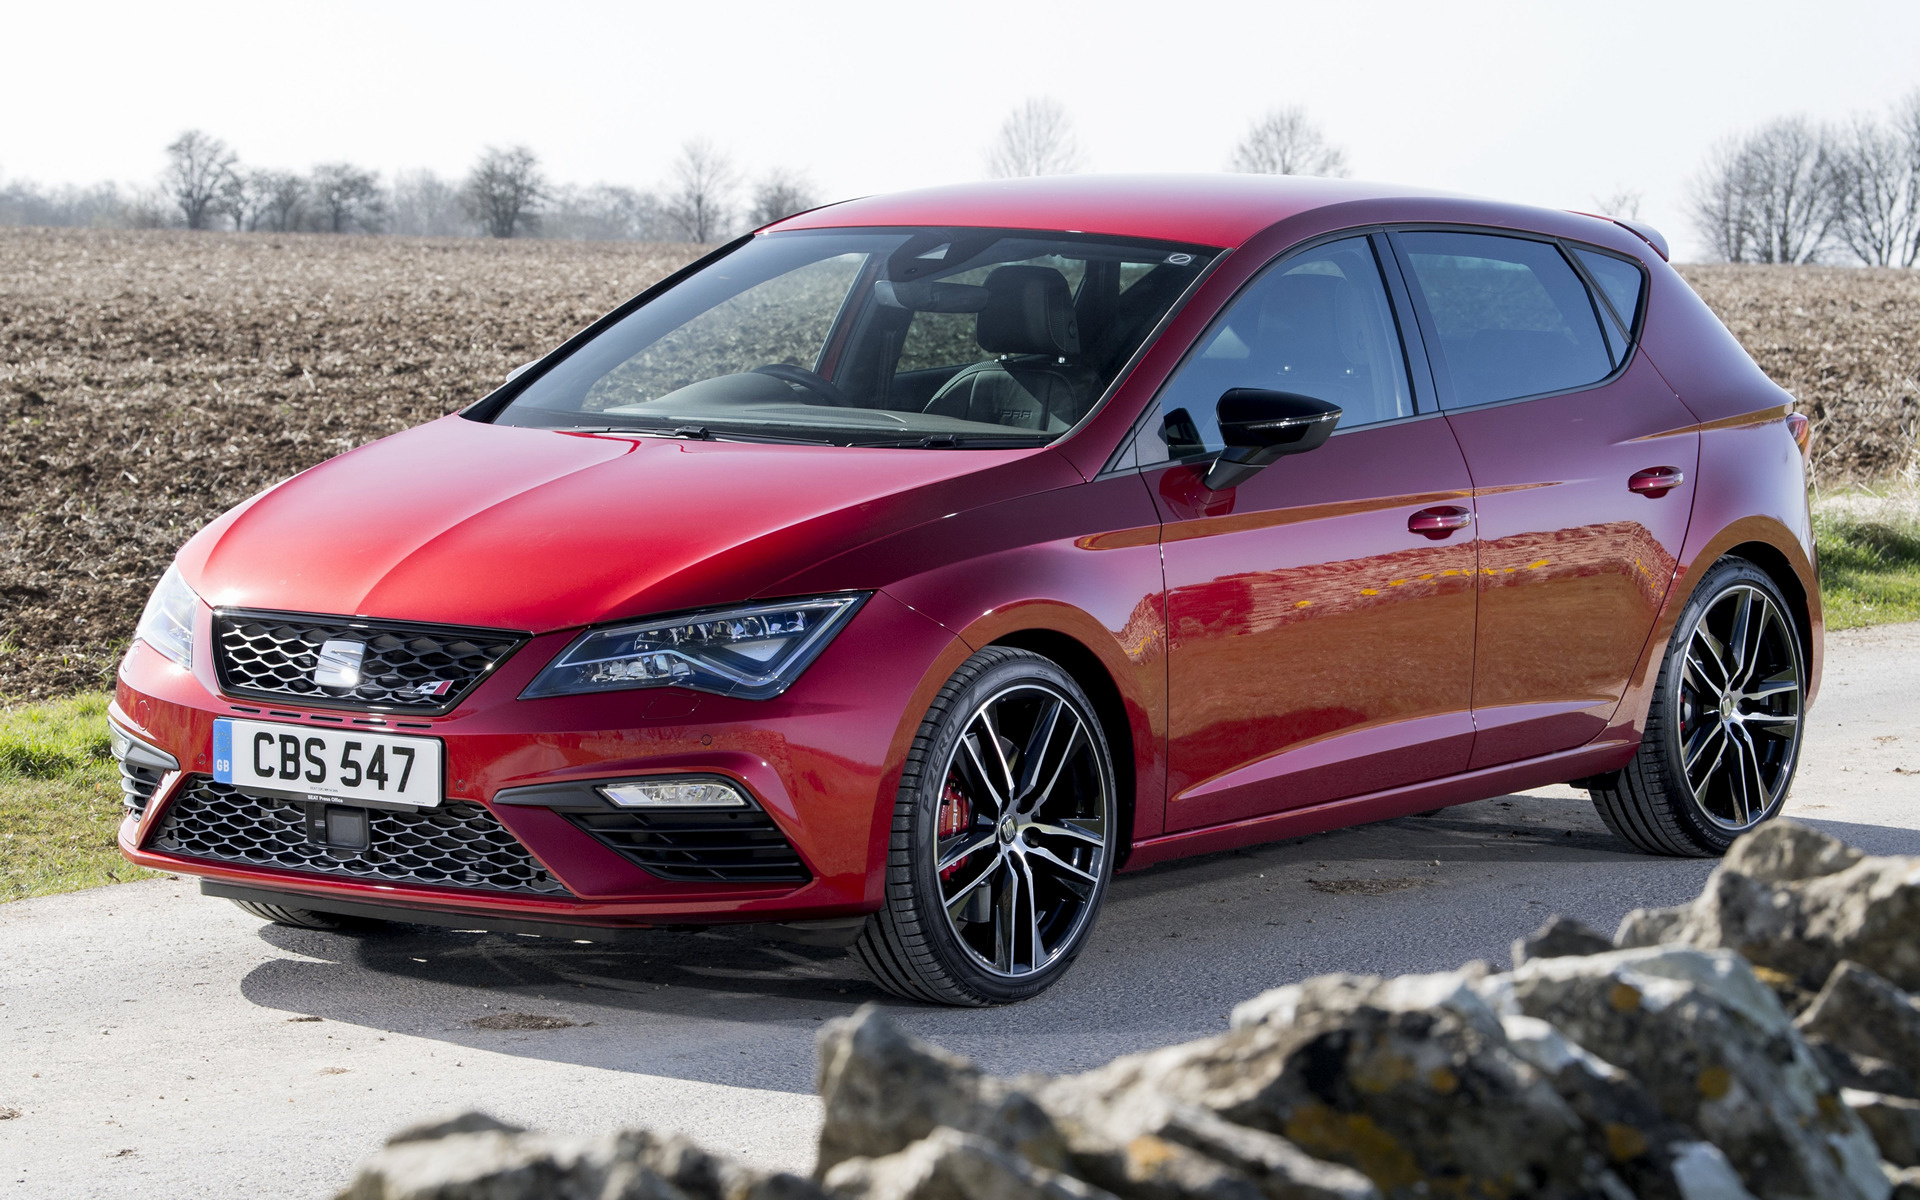 seat leon cupra 300 2017 uk wallpapers and hd images car pixel. Black Bedroom Furniture Sets. Home Design Ideas